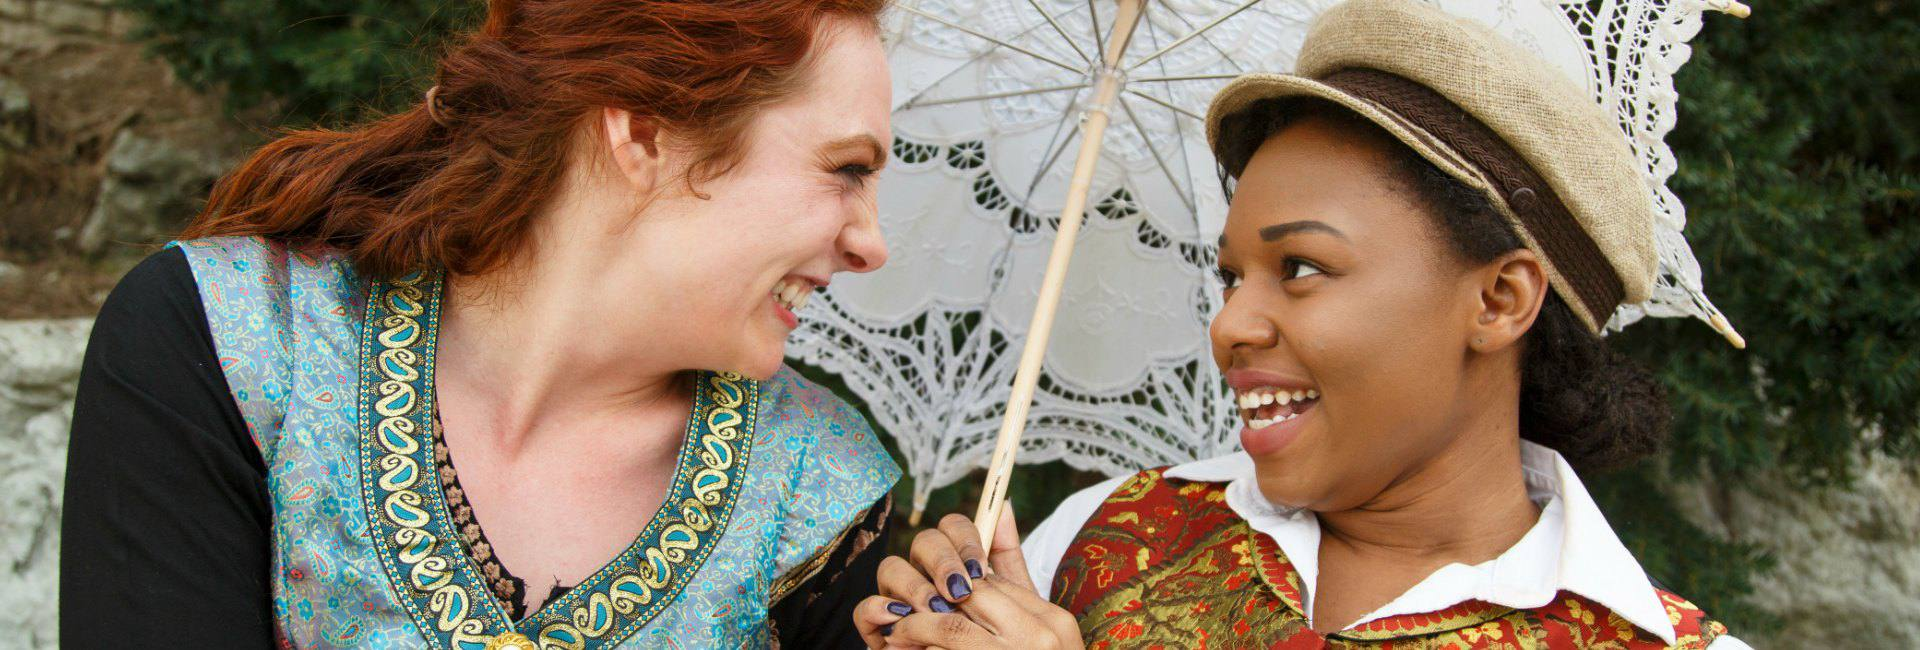 "UNO Theatre Presents: ""As You Like It"""